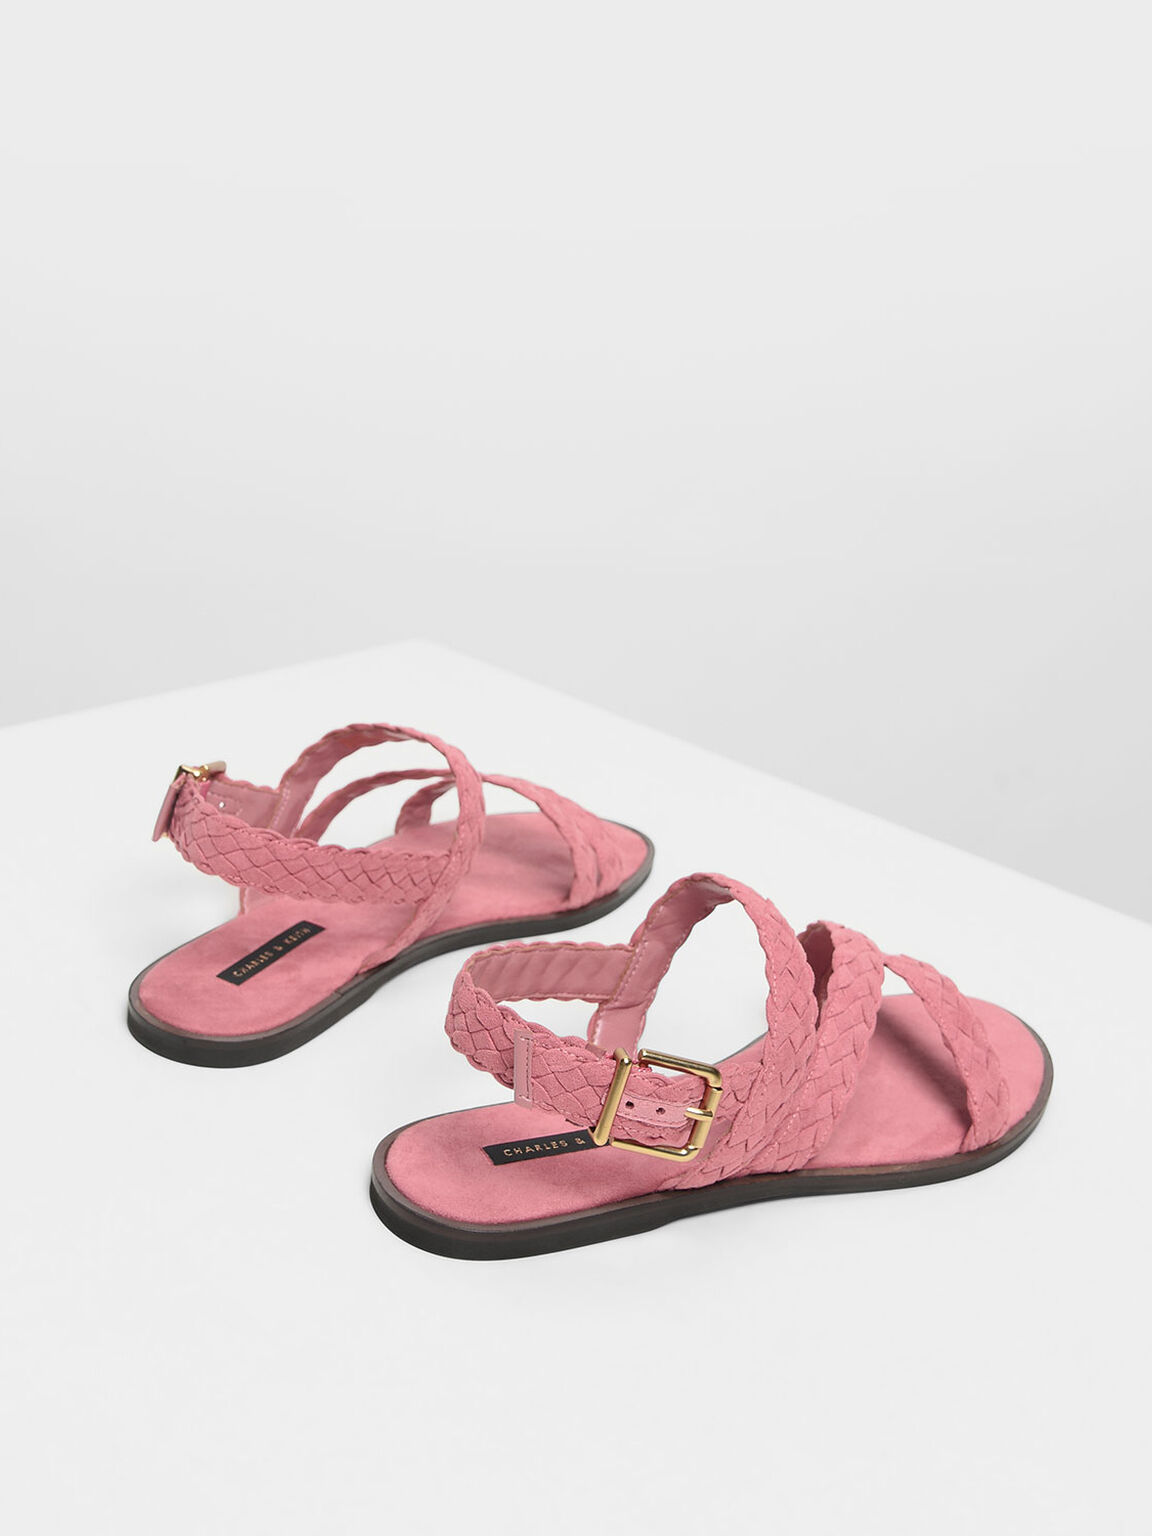 Braided Asymmetrical Sandals, Pink, hi-res